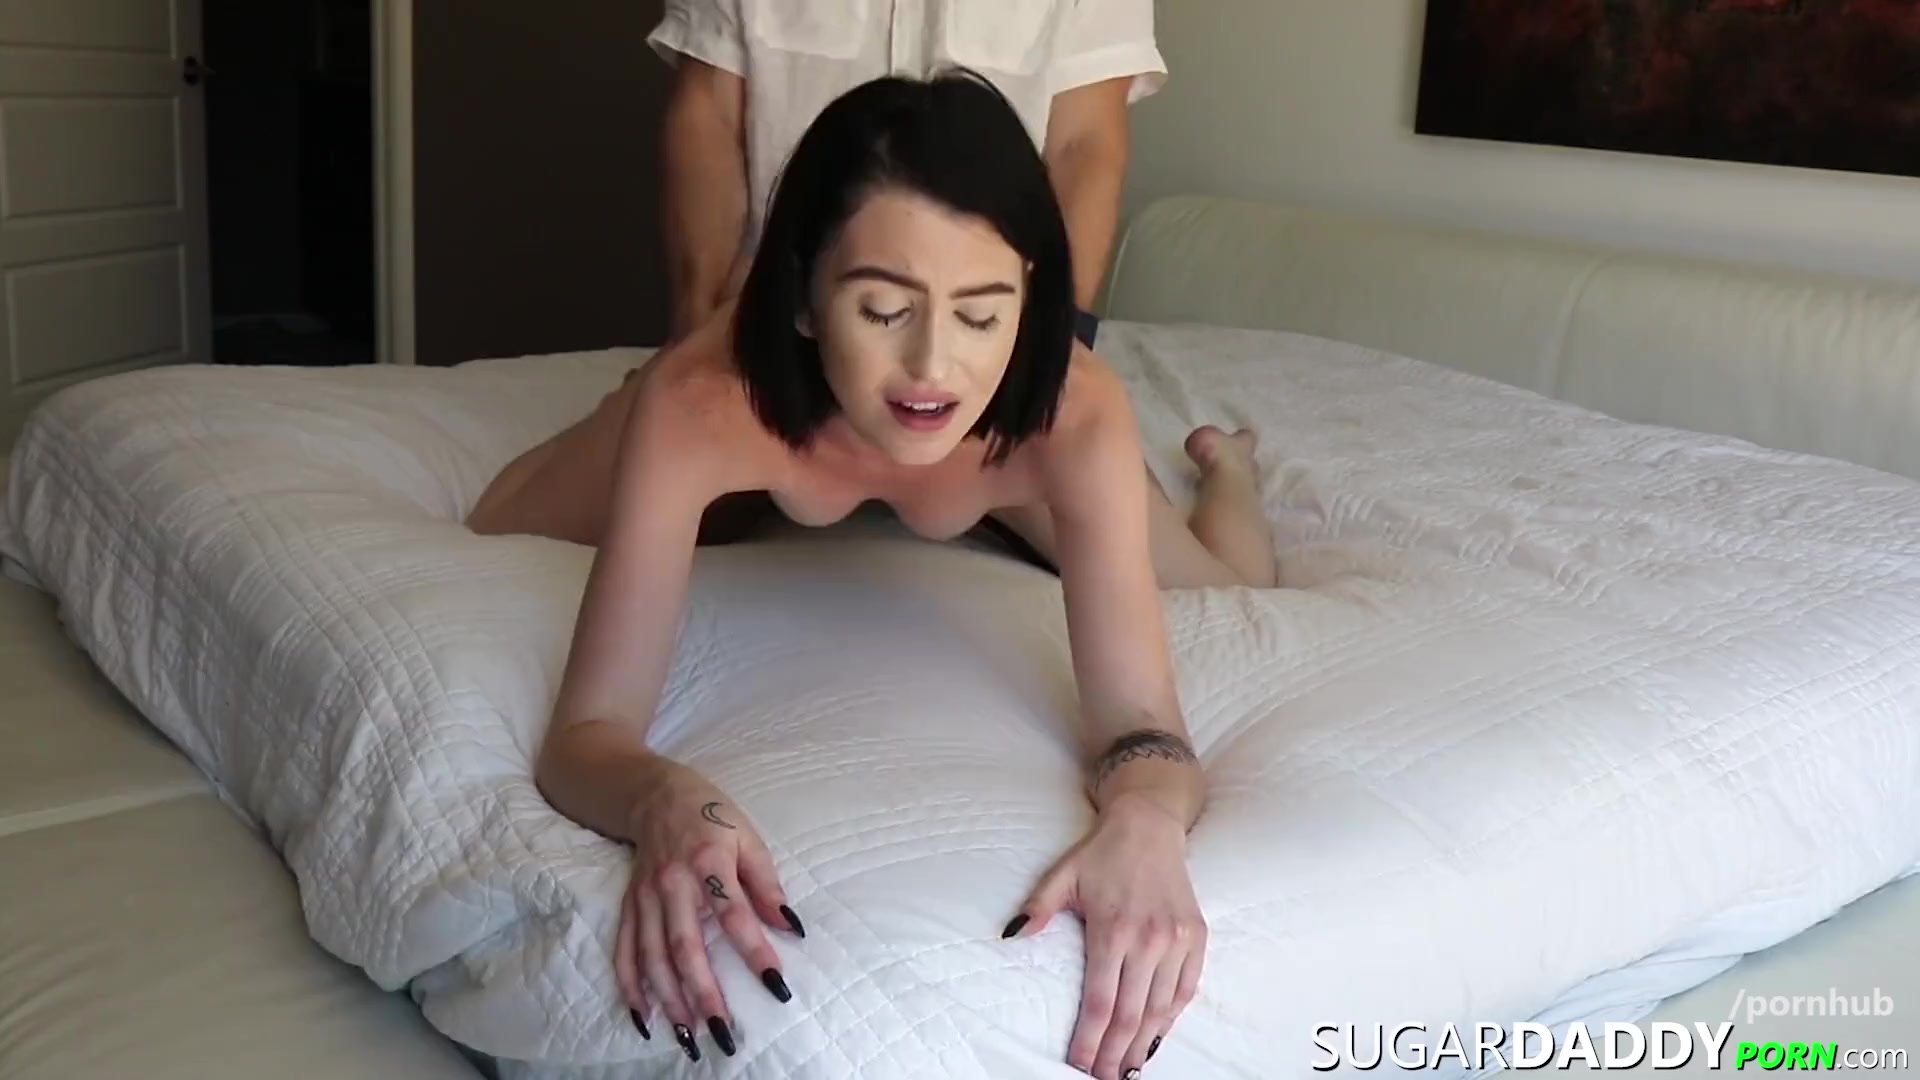 REAL STORY. 18yo Teen Fucks SugarDaddy To Pay For REAL BF Vacation